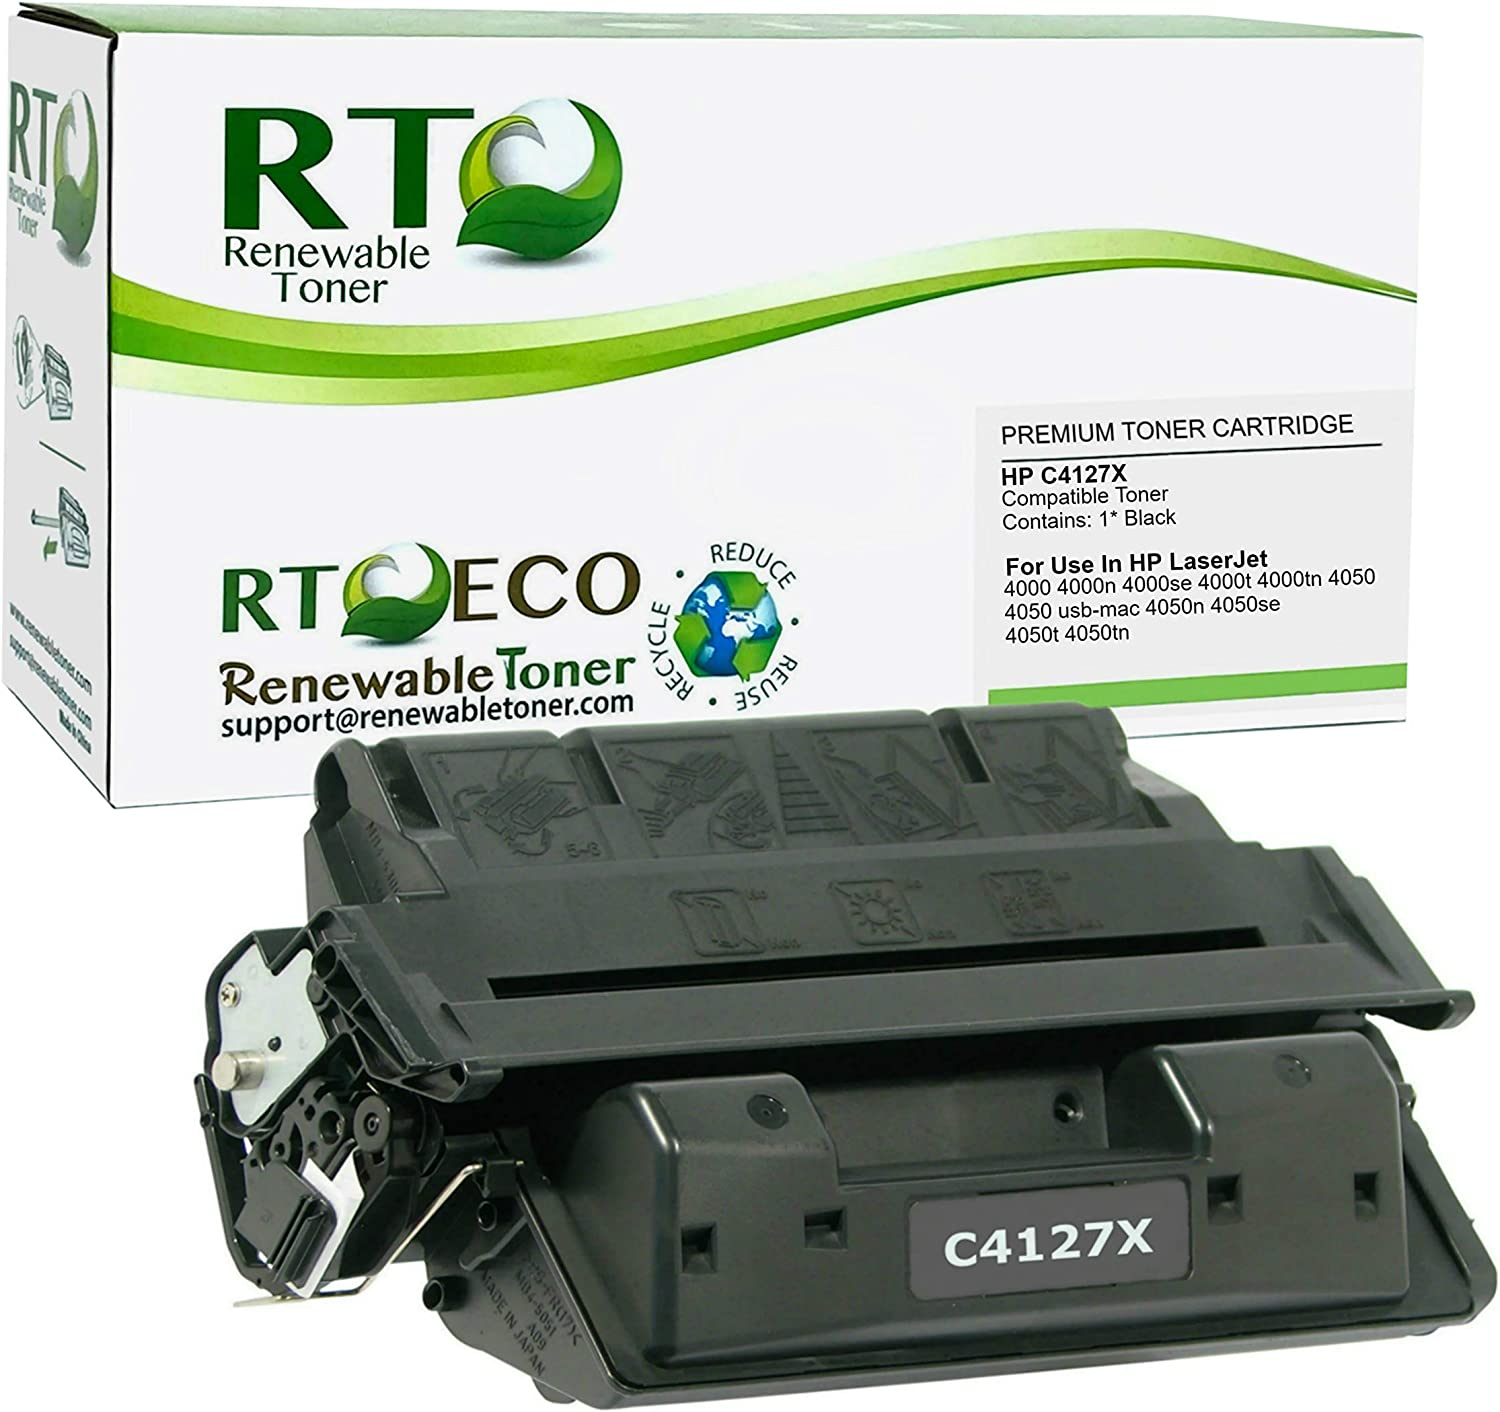 Renewable Toner Compatible Toner Cartridge High Yield Replacement for HP 27X C4127X Laserjet 4000 4050